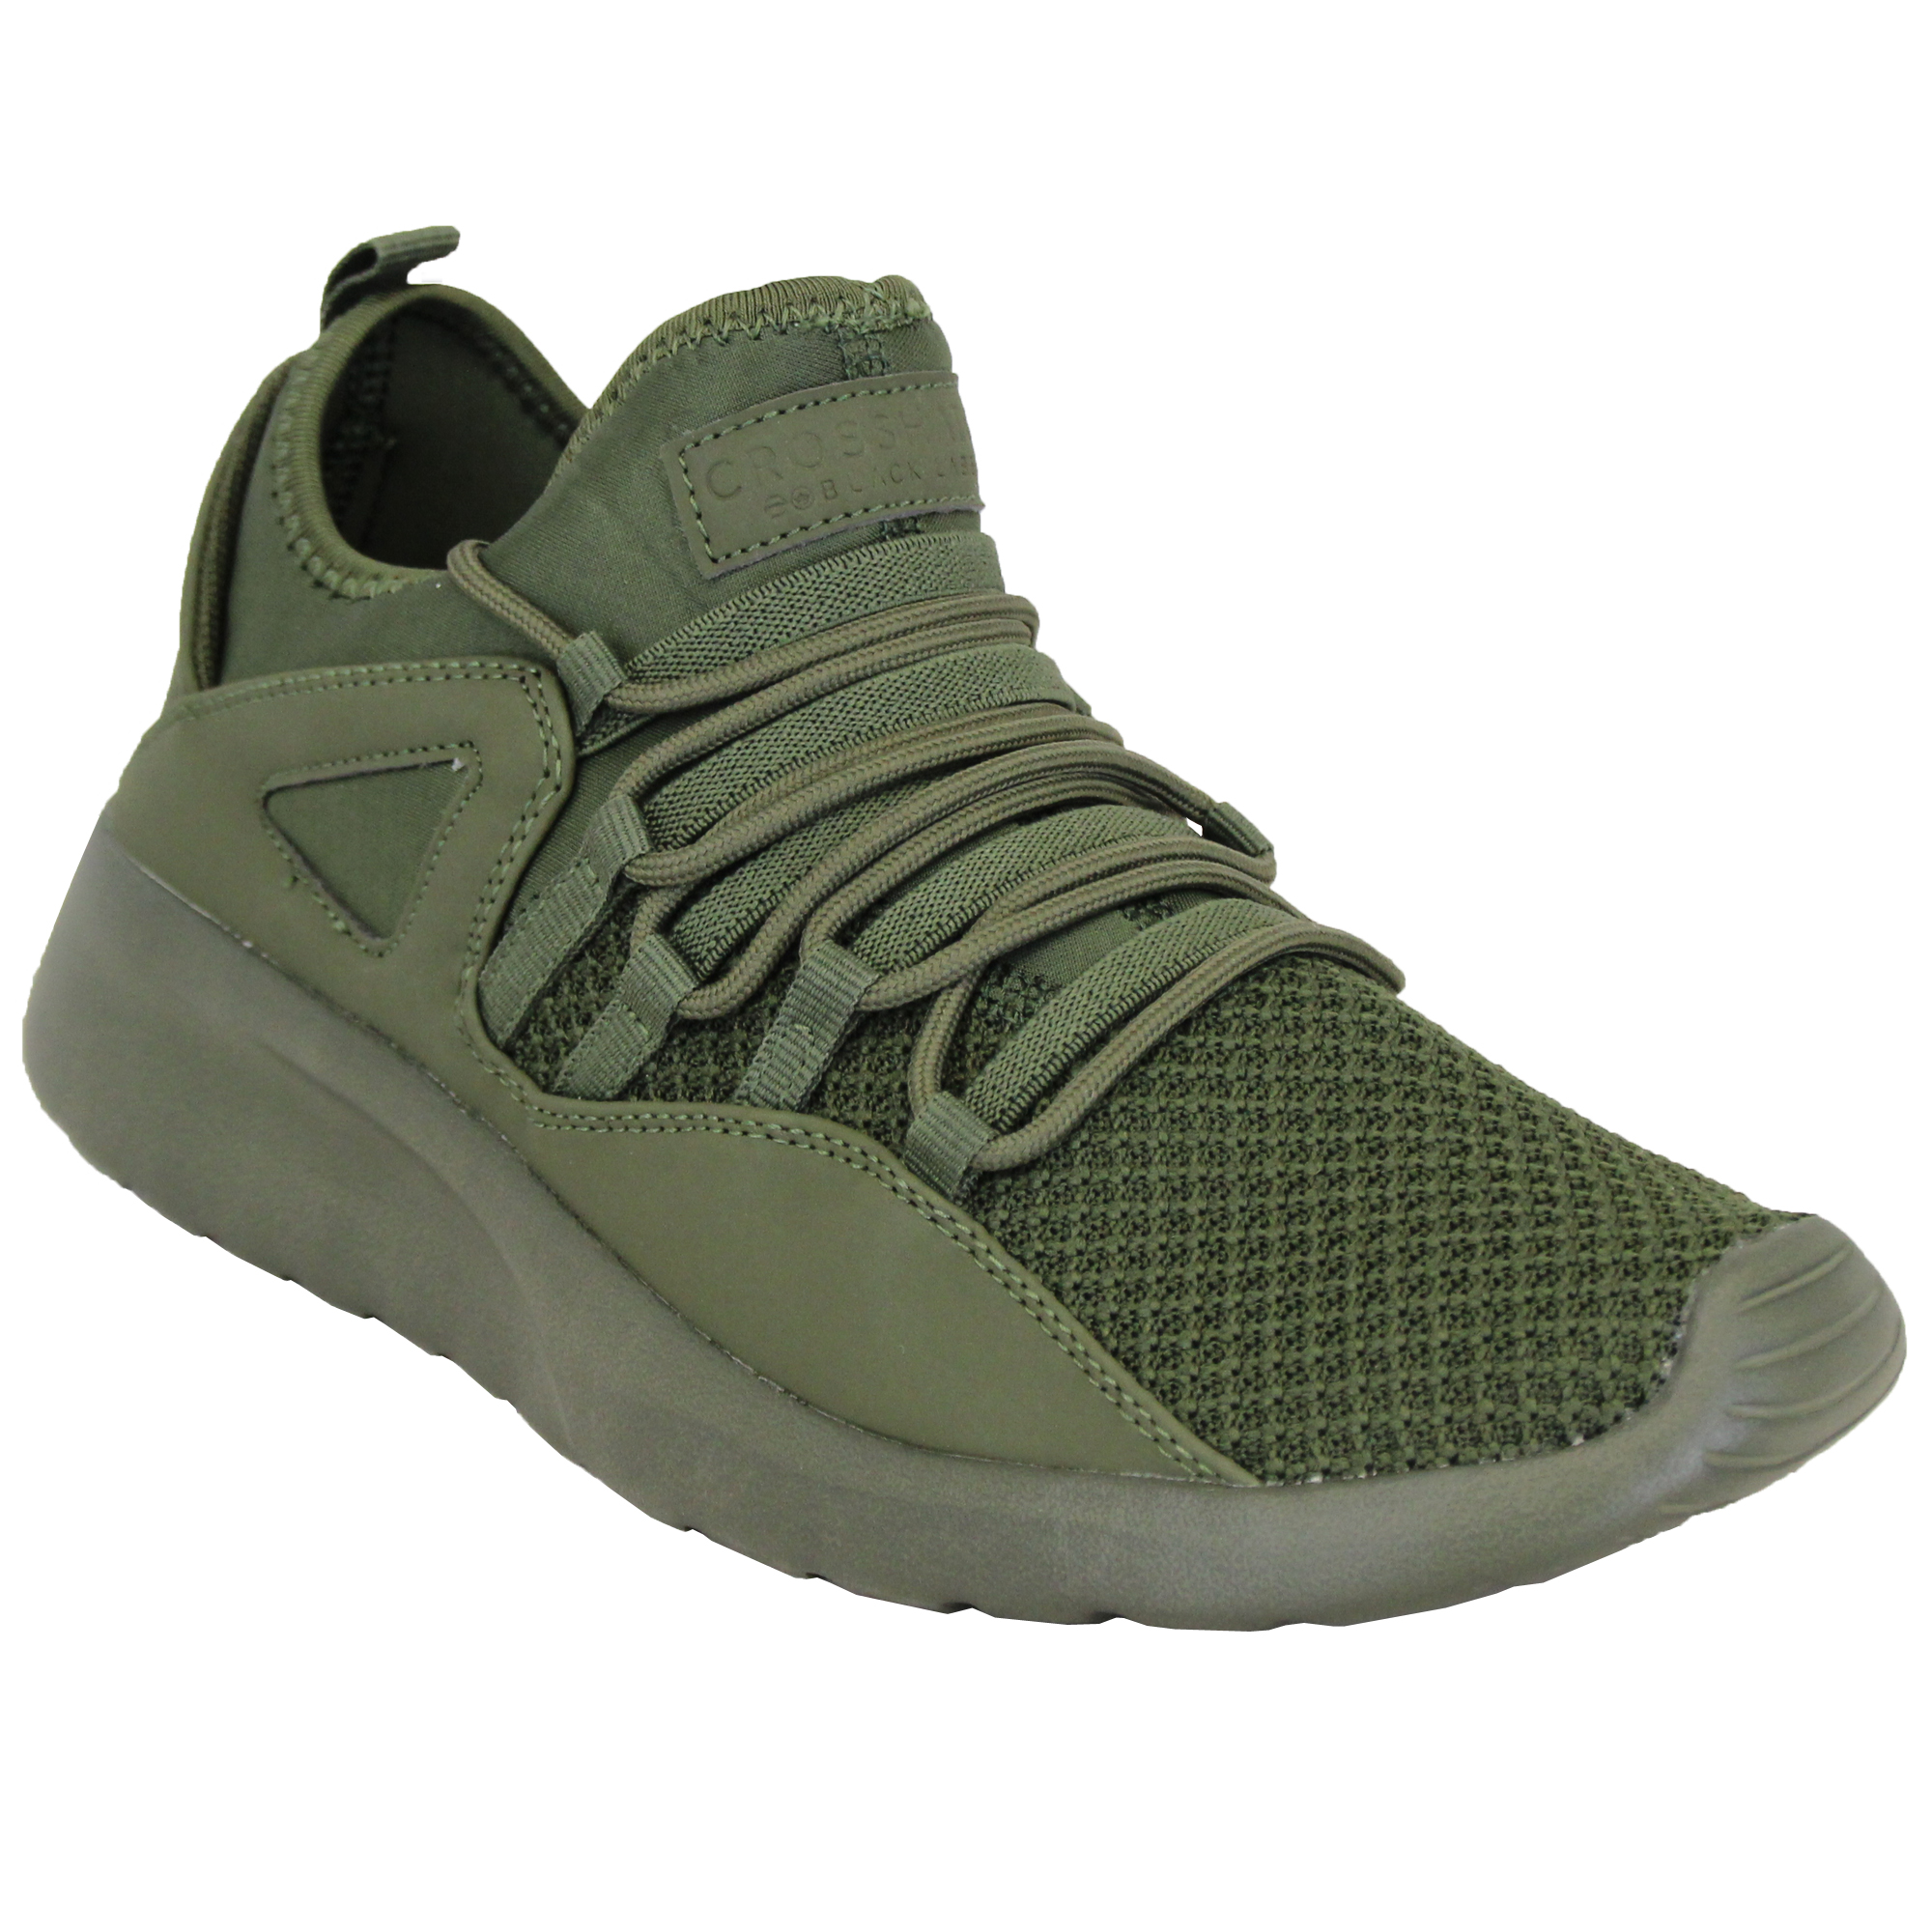 Mens-Trainers-Crosshatch-Running-Speed-Lace-Up-Sneakers-Sports-Gym-Casual-Shoes thumbnail 6